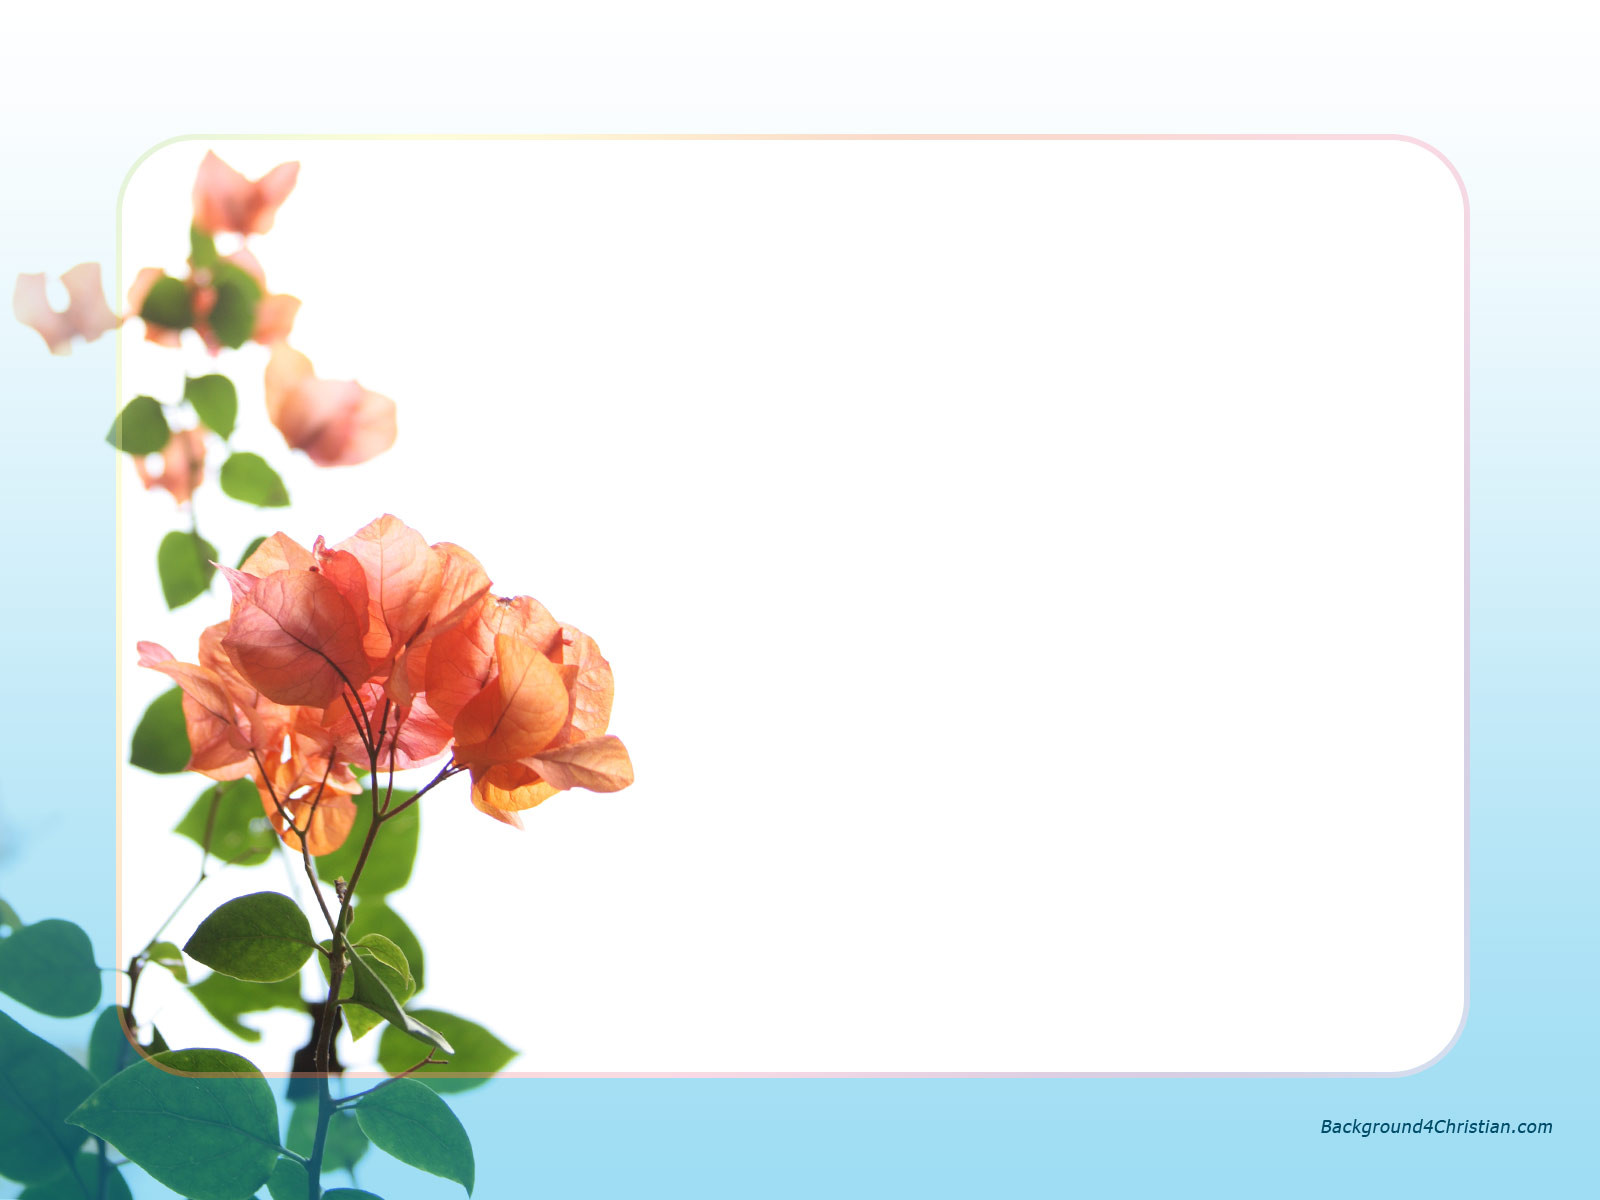 Bright flowers frame border clipart image library stock Free Bright Border Cliparts, Download Free Clip Art, Free Clip Art ... image library stock